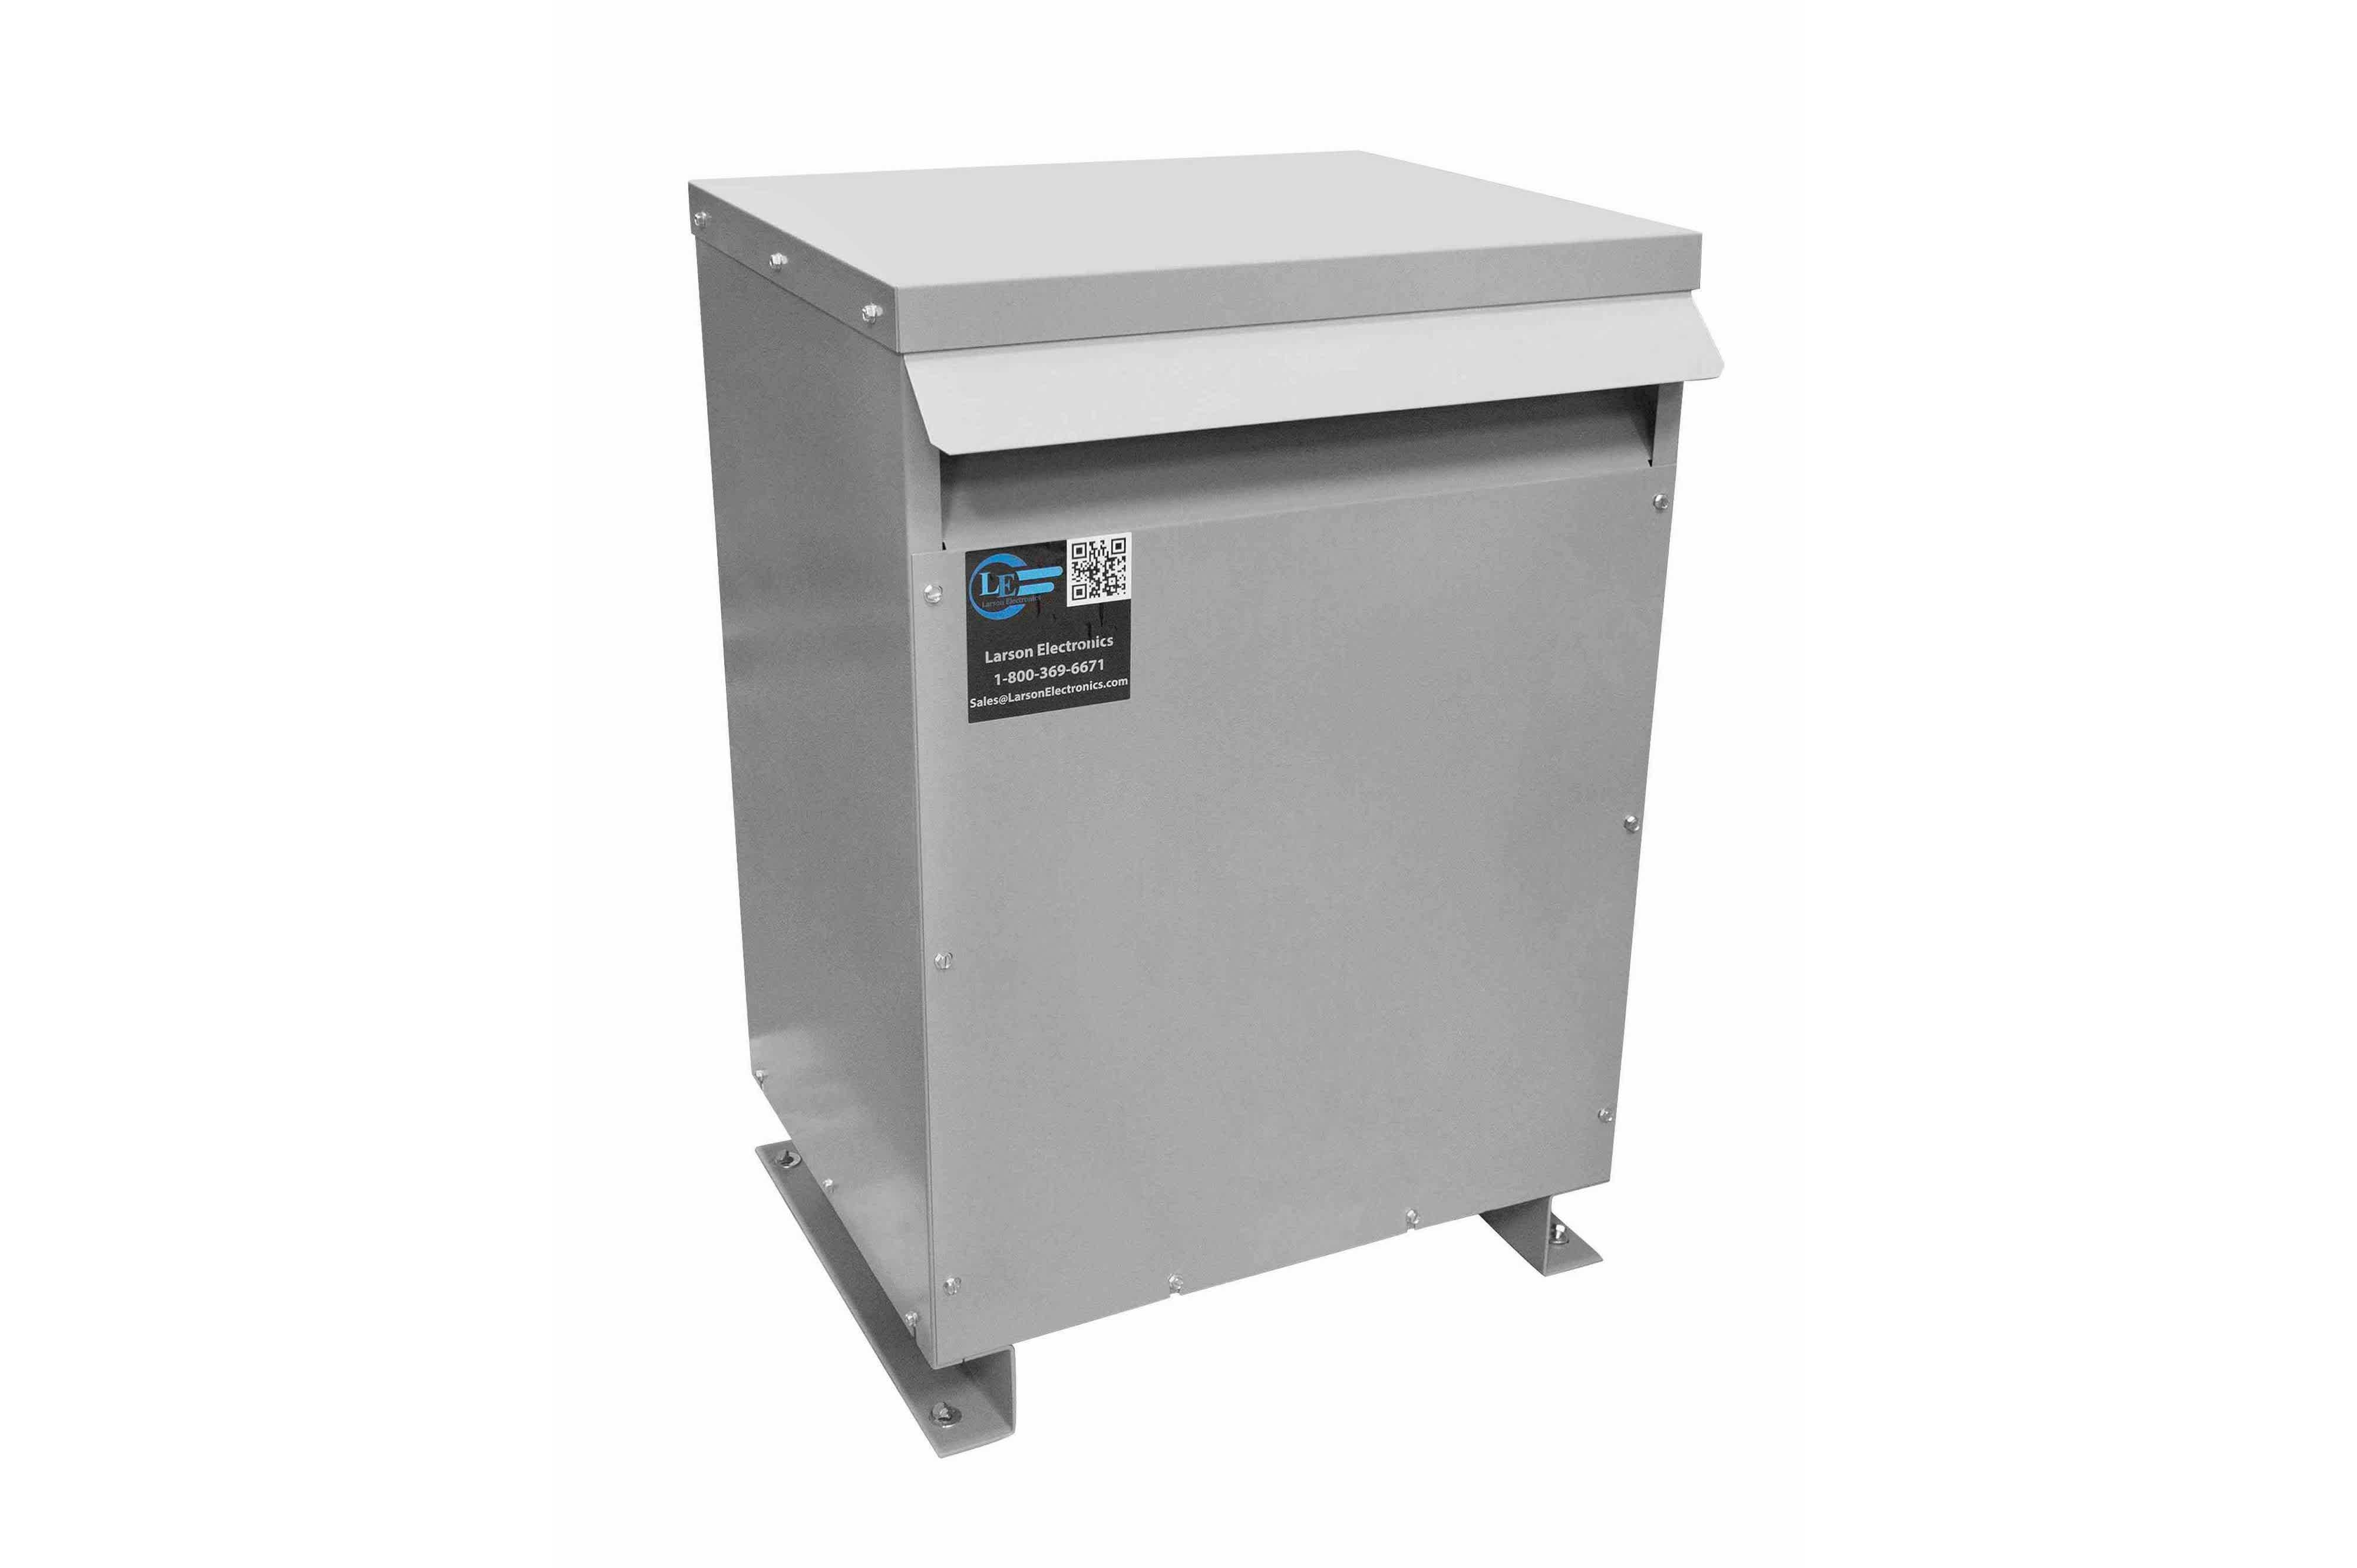 137.5 kVA 3PH Isolation Transformer, 400V Wye Primary, 208V Delta Secondary, N3R, Ventilated, 60 Hz